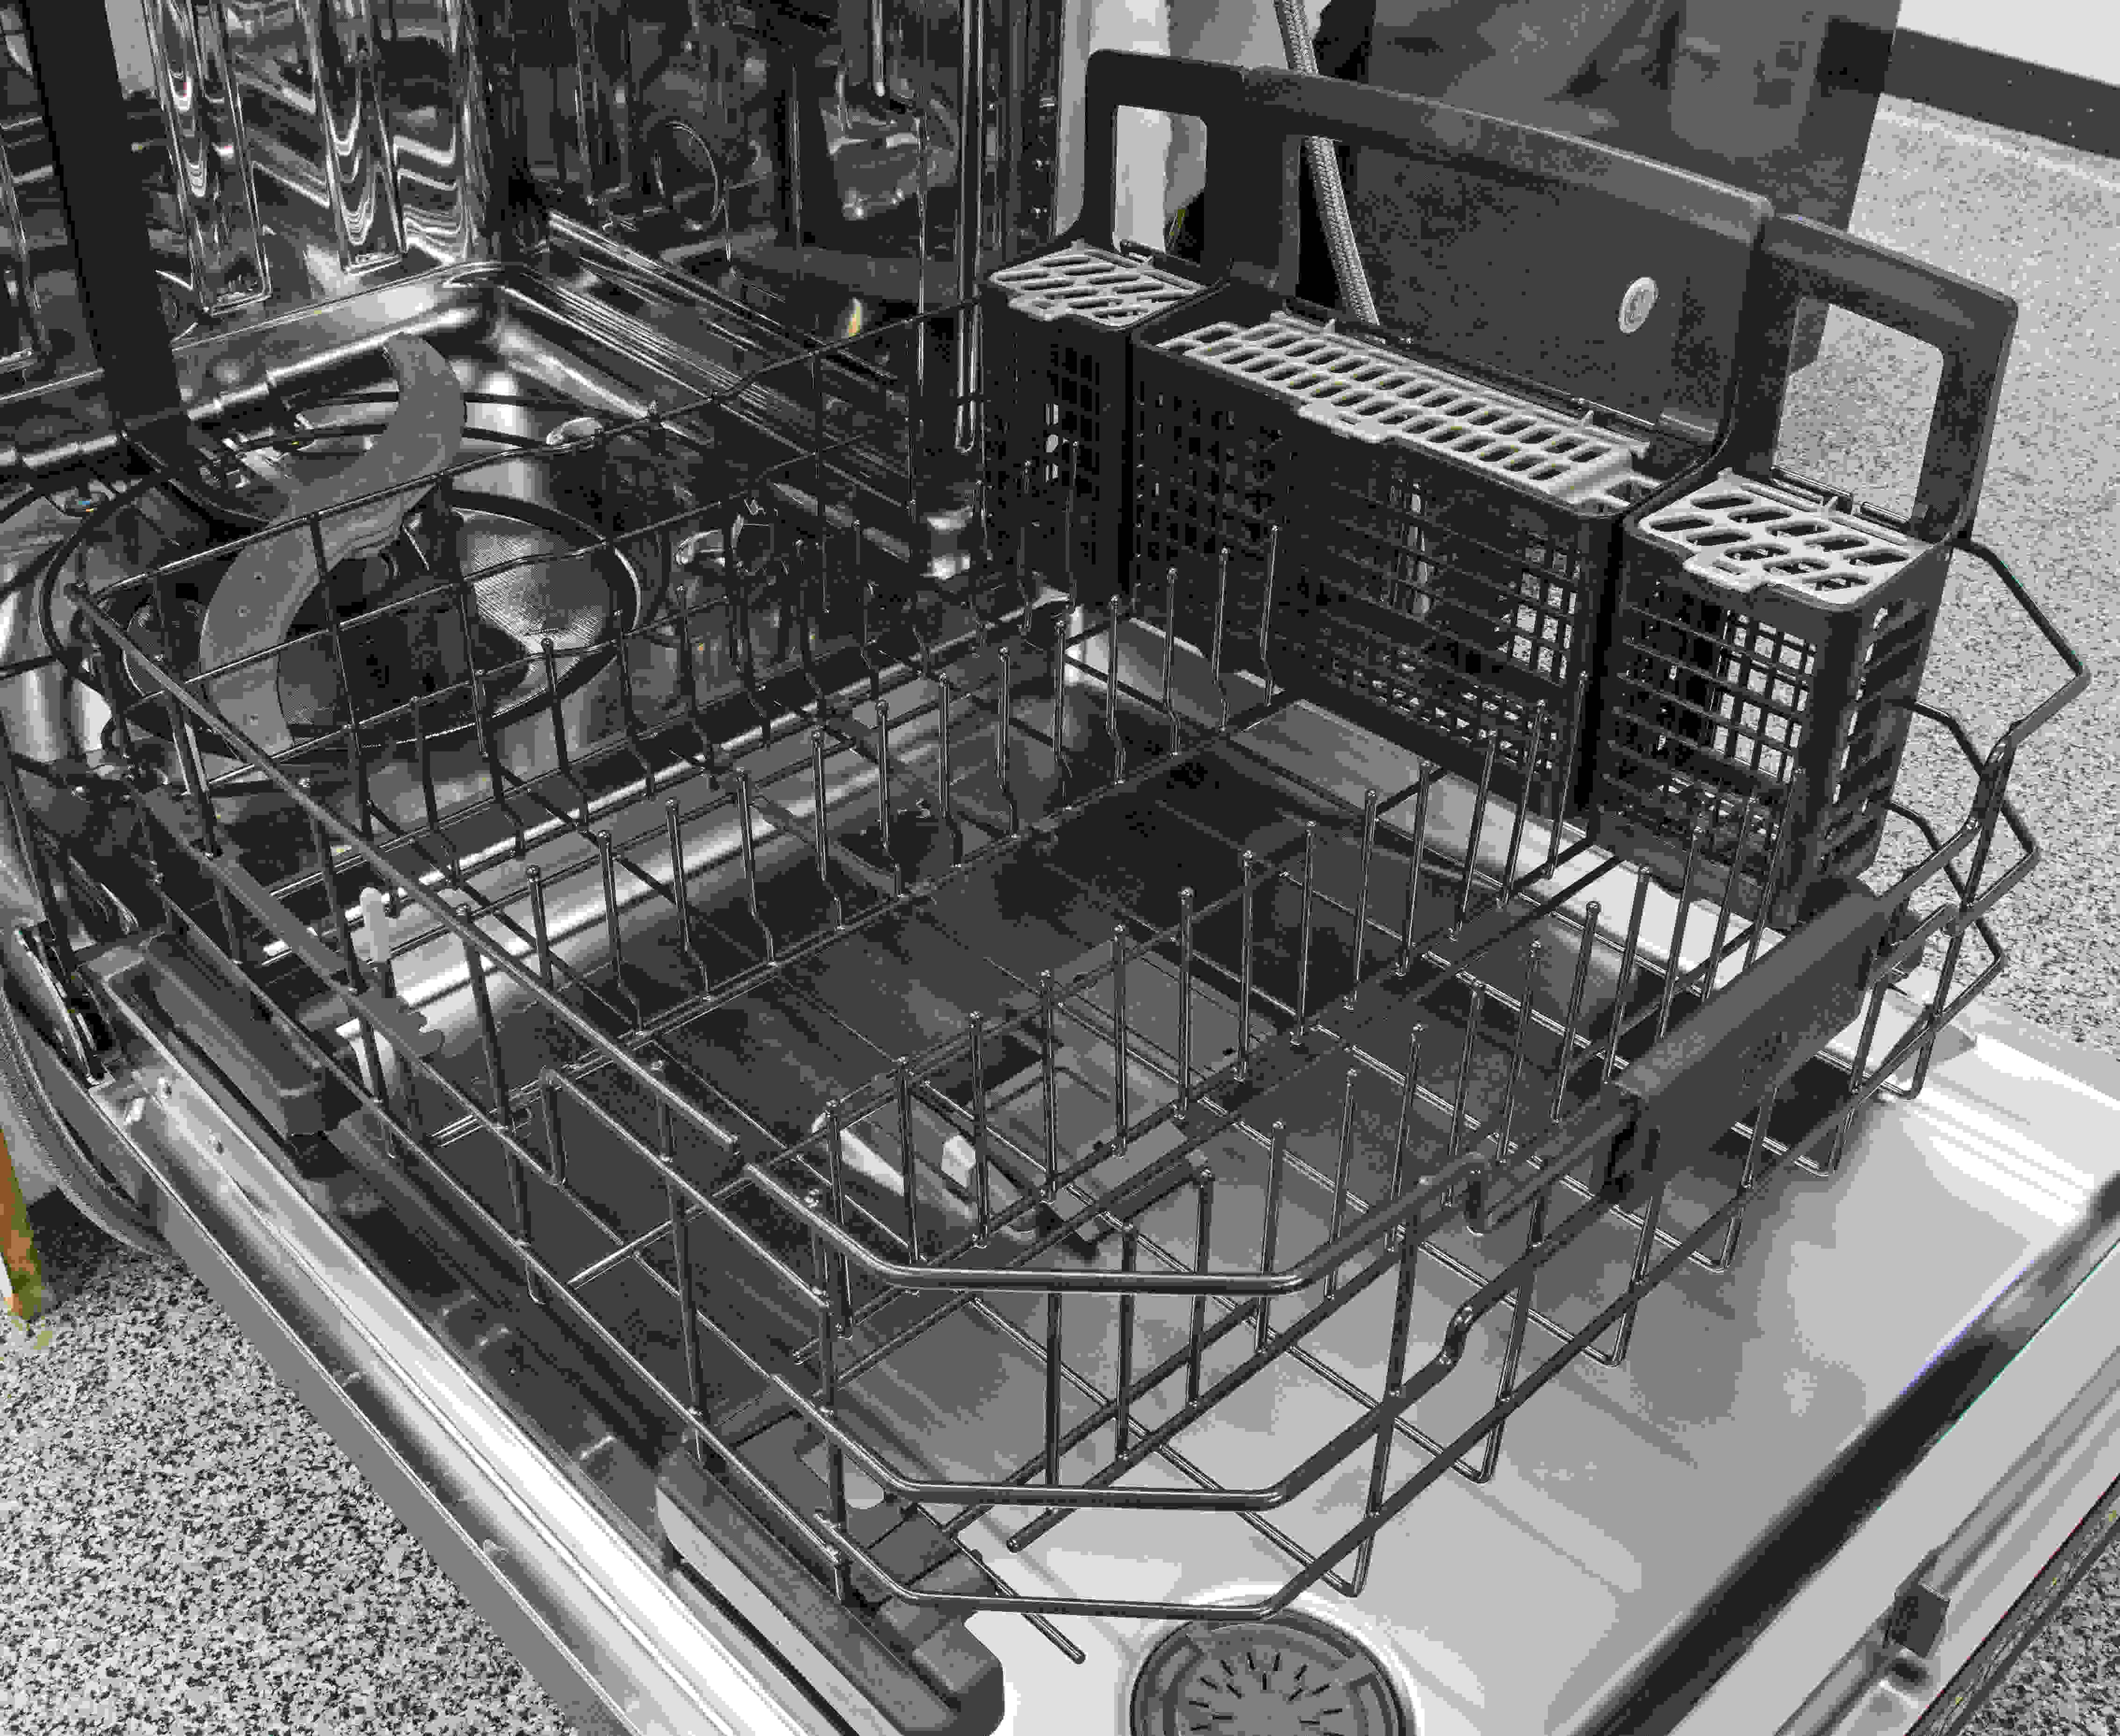 The straightforward lower rack doesn't have many bells and whistles, but the removable cutlery basket can be split into three sections for customizable usage.